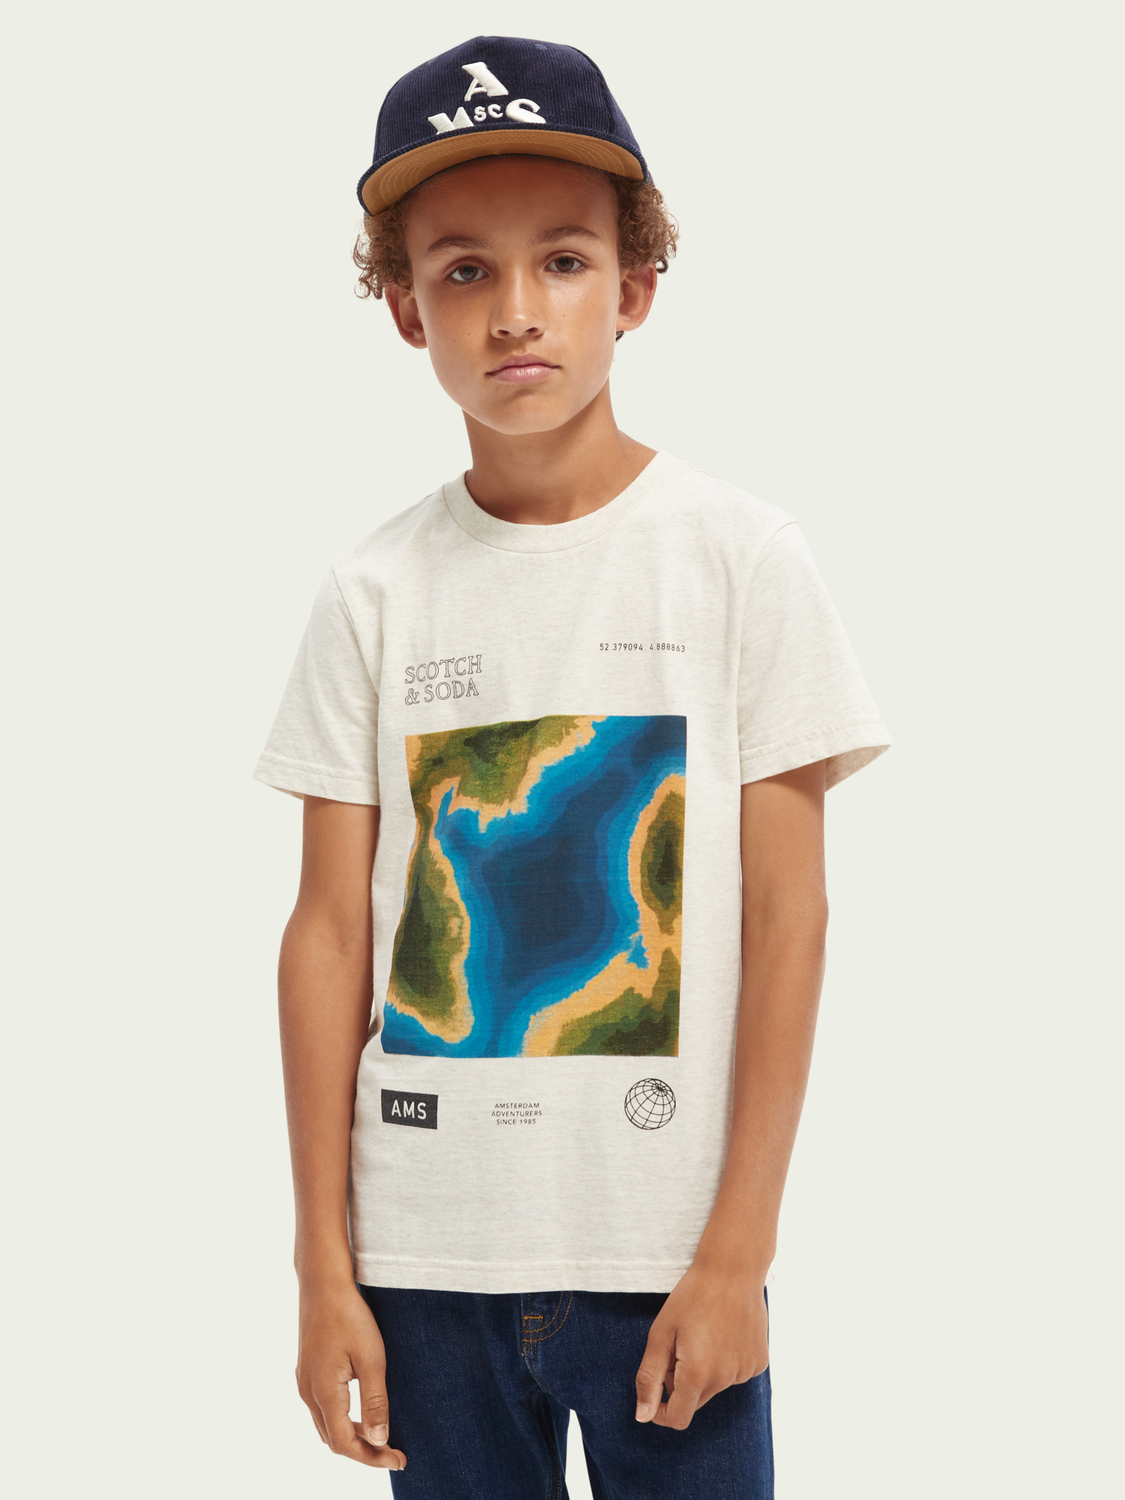 Kinder Relaxed-fit short-sleeved T-shirt